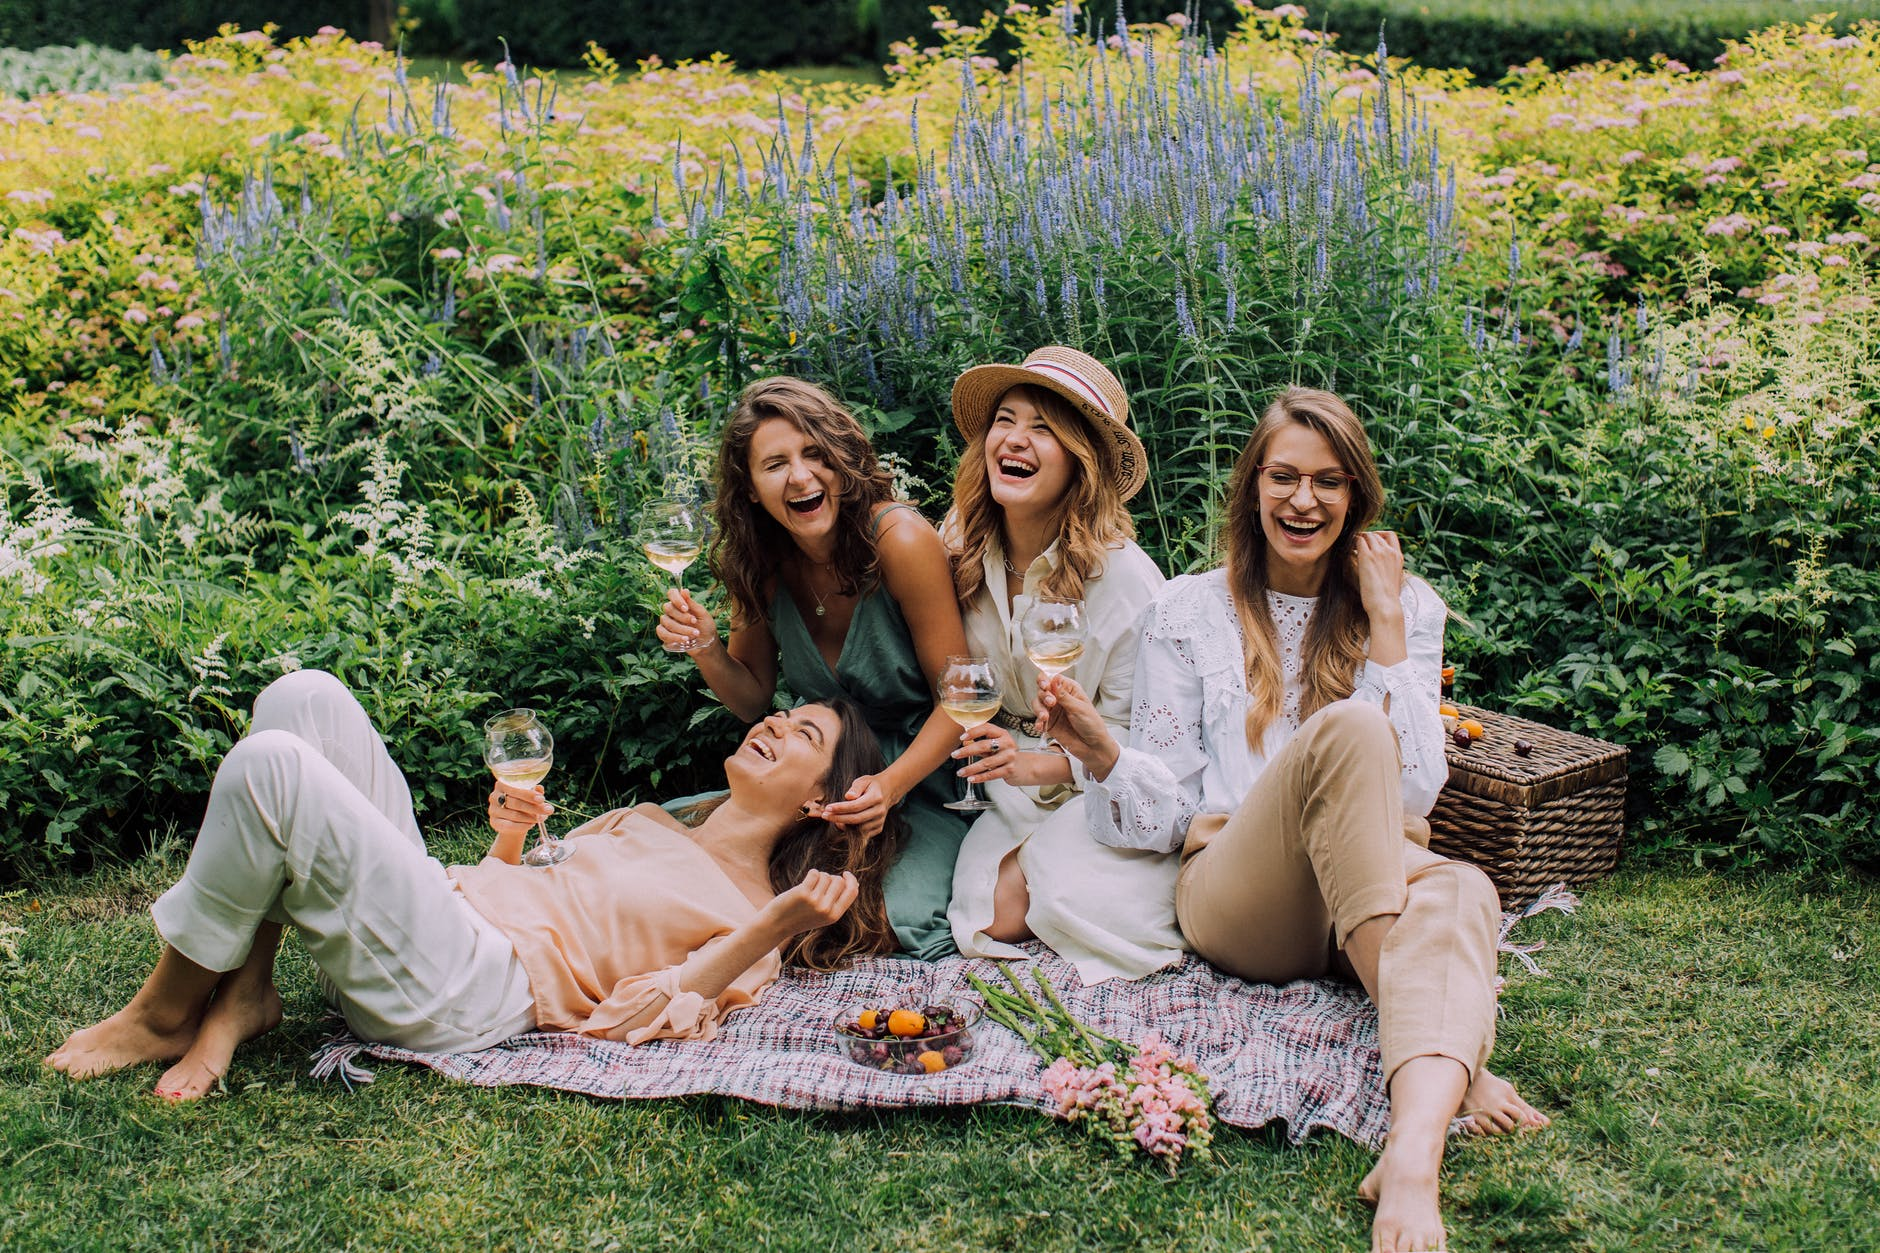 Four women laugh in a field with a picnic